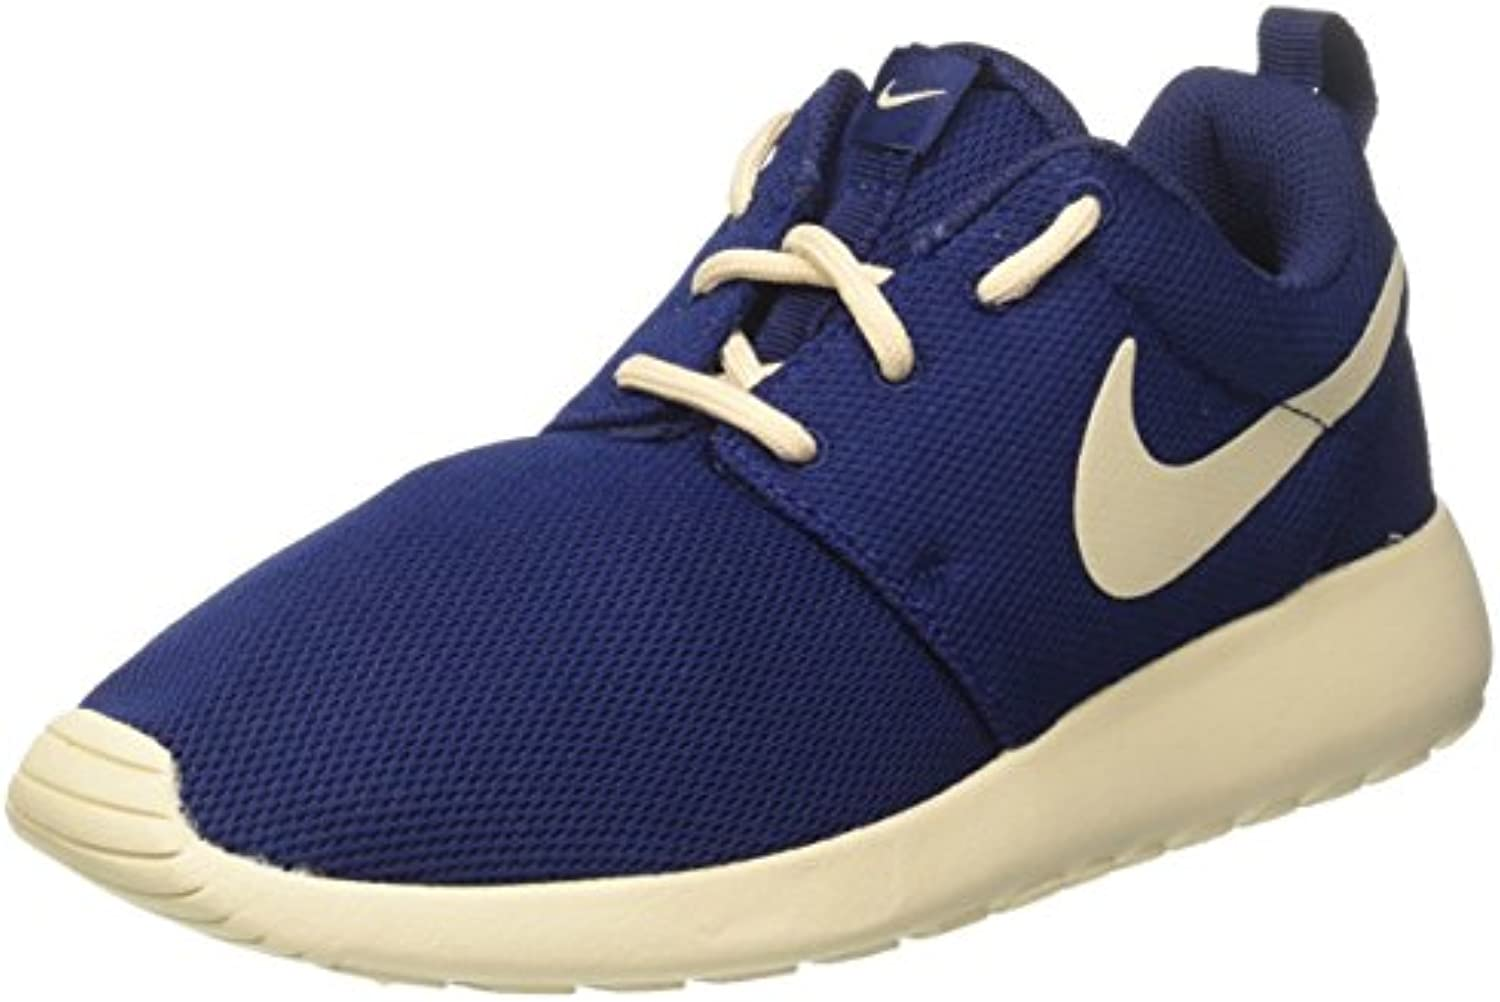 NIKE Women's WMNS Roshe One Low-Top Sneakers B01N5O1HZT Parent Parent Parent a17136